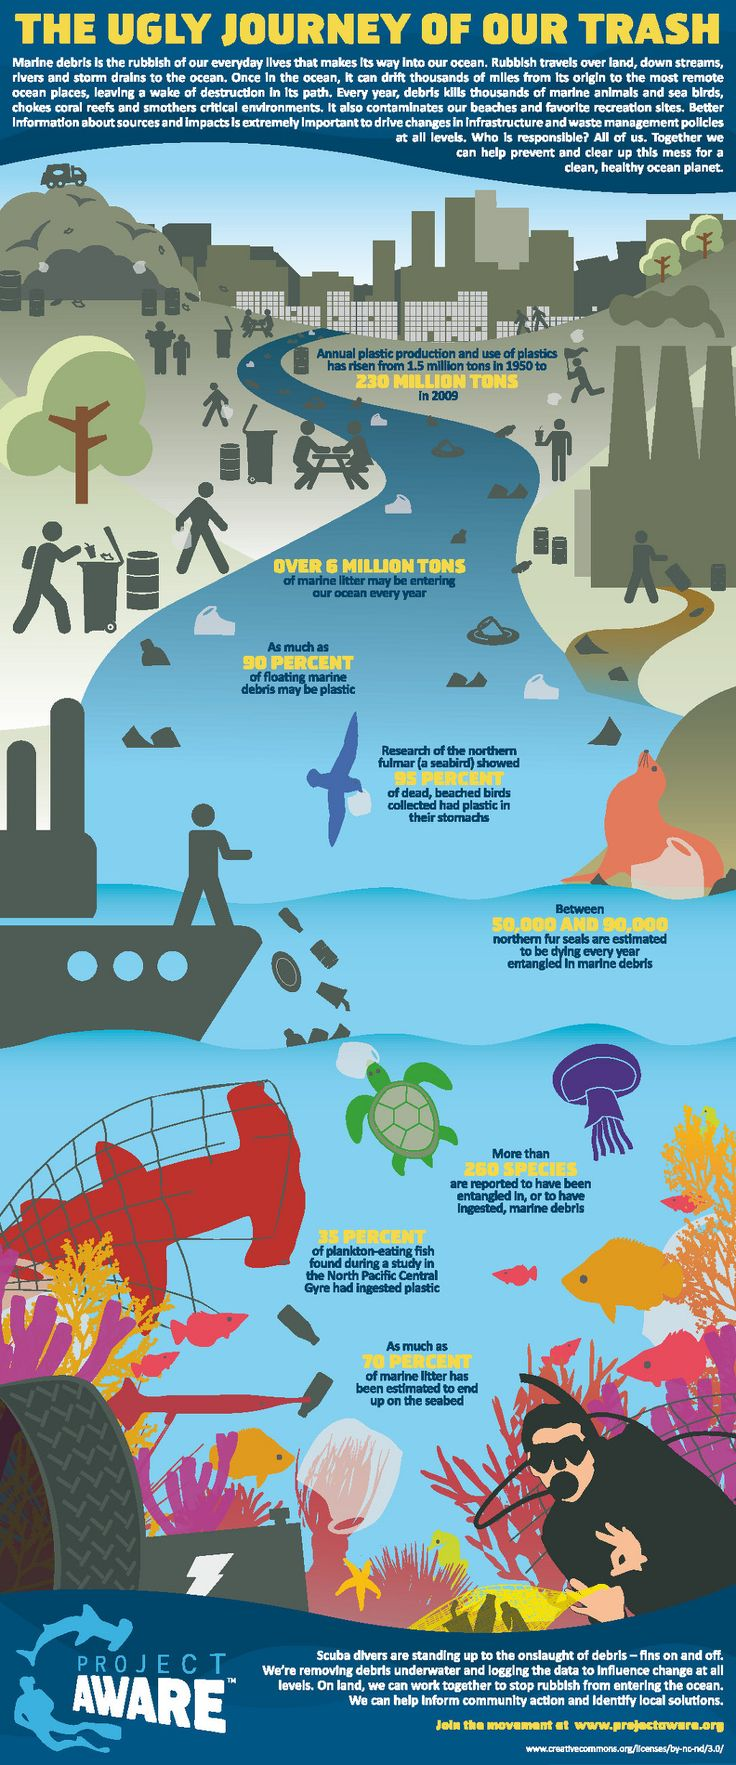 The ugly journey of our trash infographic